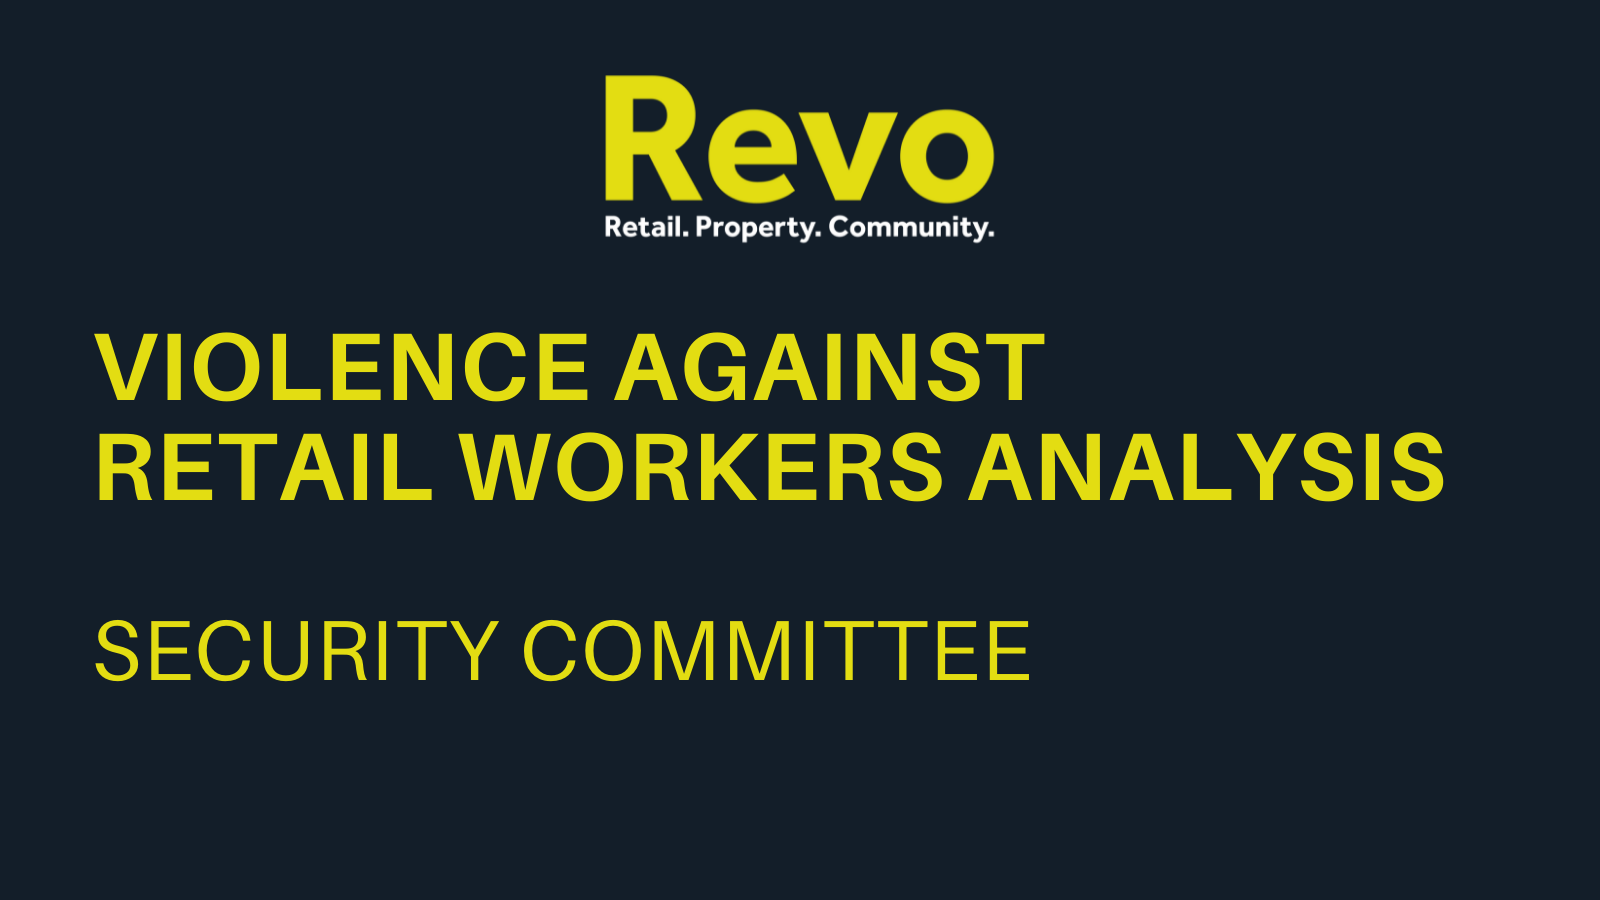 https://revocommunity.org/wp-content/uploads/2021/07/Violence-against-retail-workers-analysis